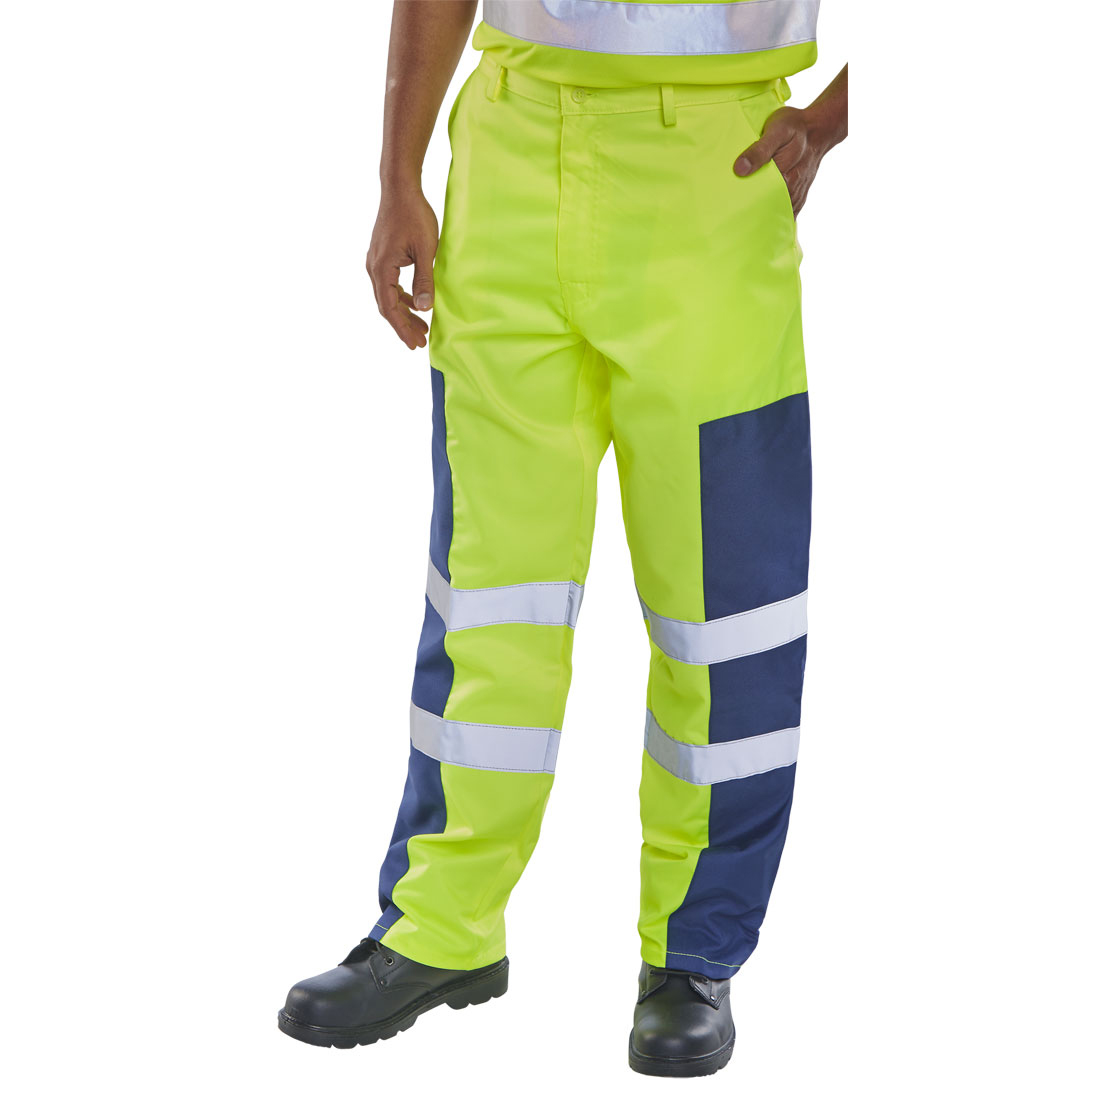 Click Workwear Trousers Hi-Vis Nylon Patch Yellow/Navy 28 Long Ref PCTSYNNP28T *Up to 3 Day Leadtime*